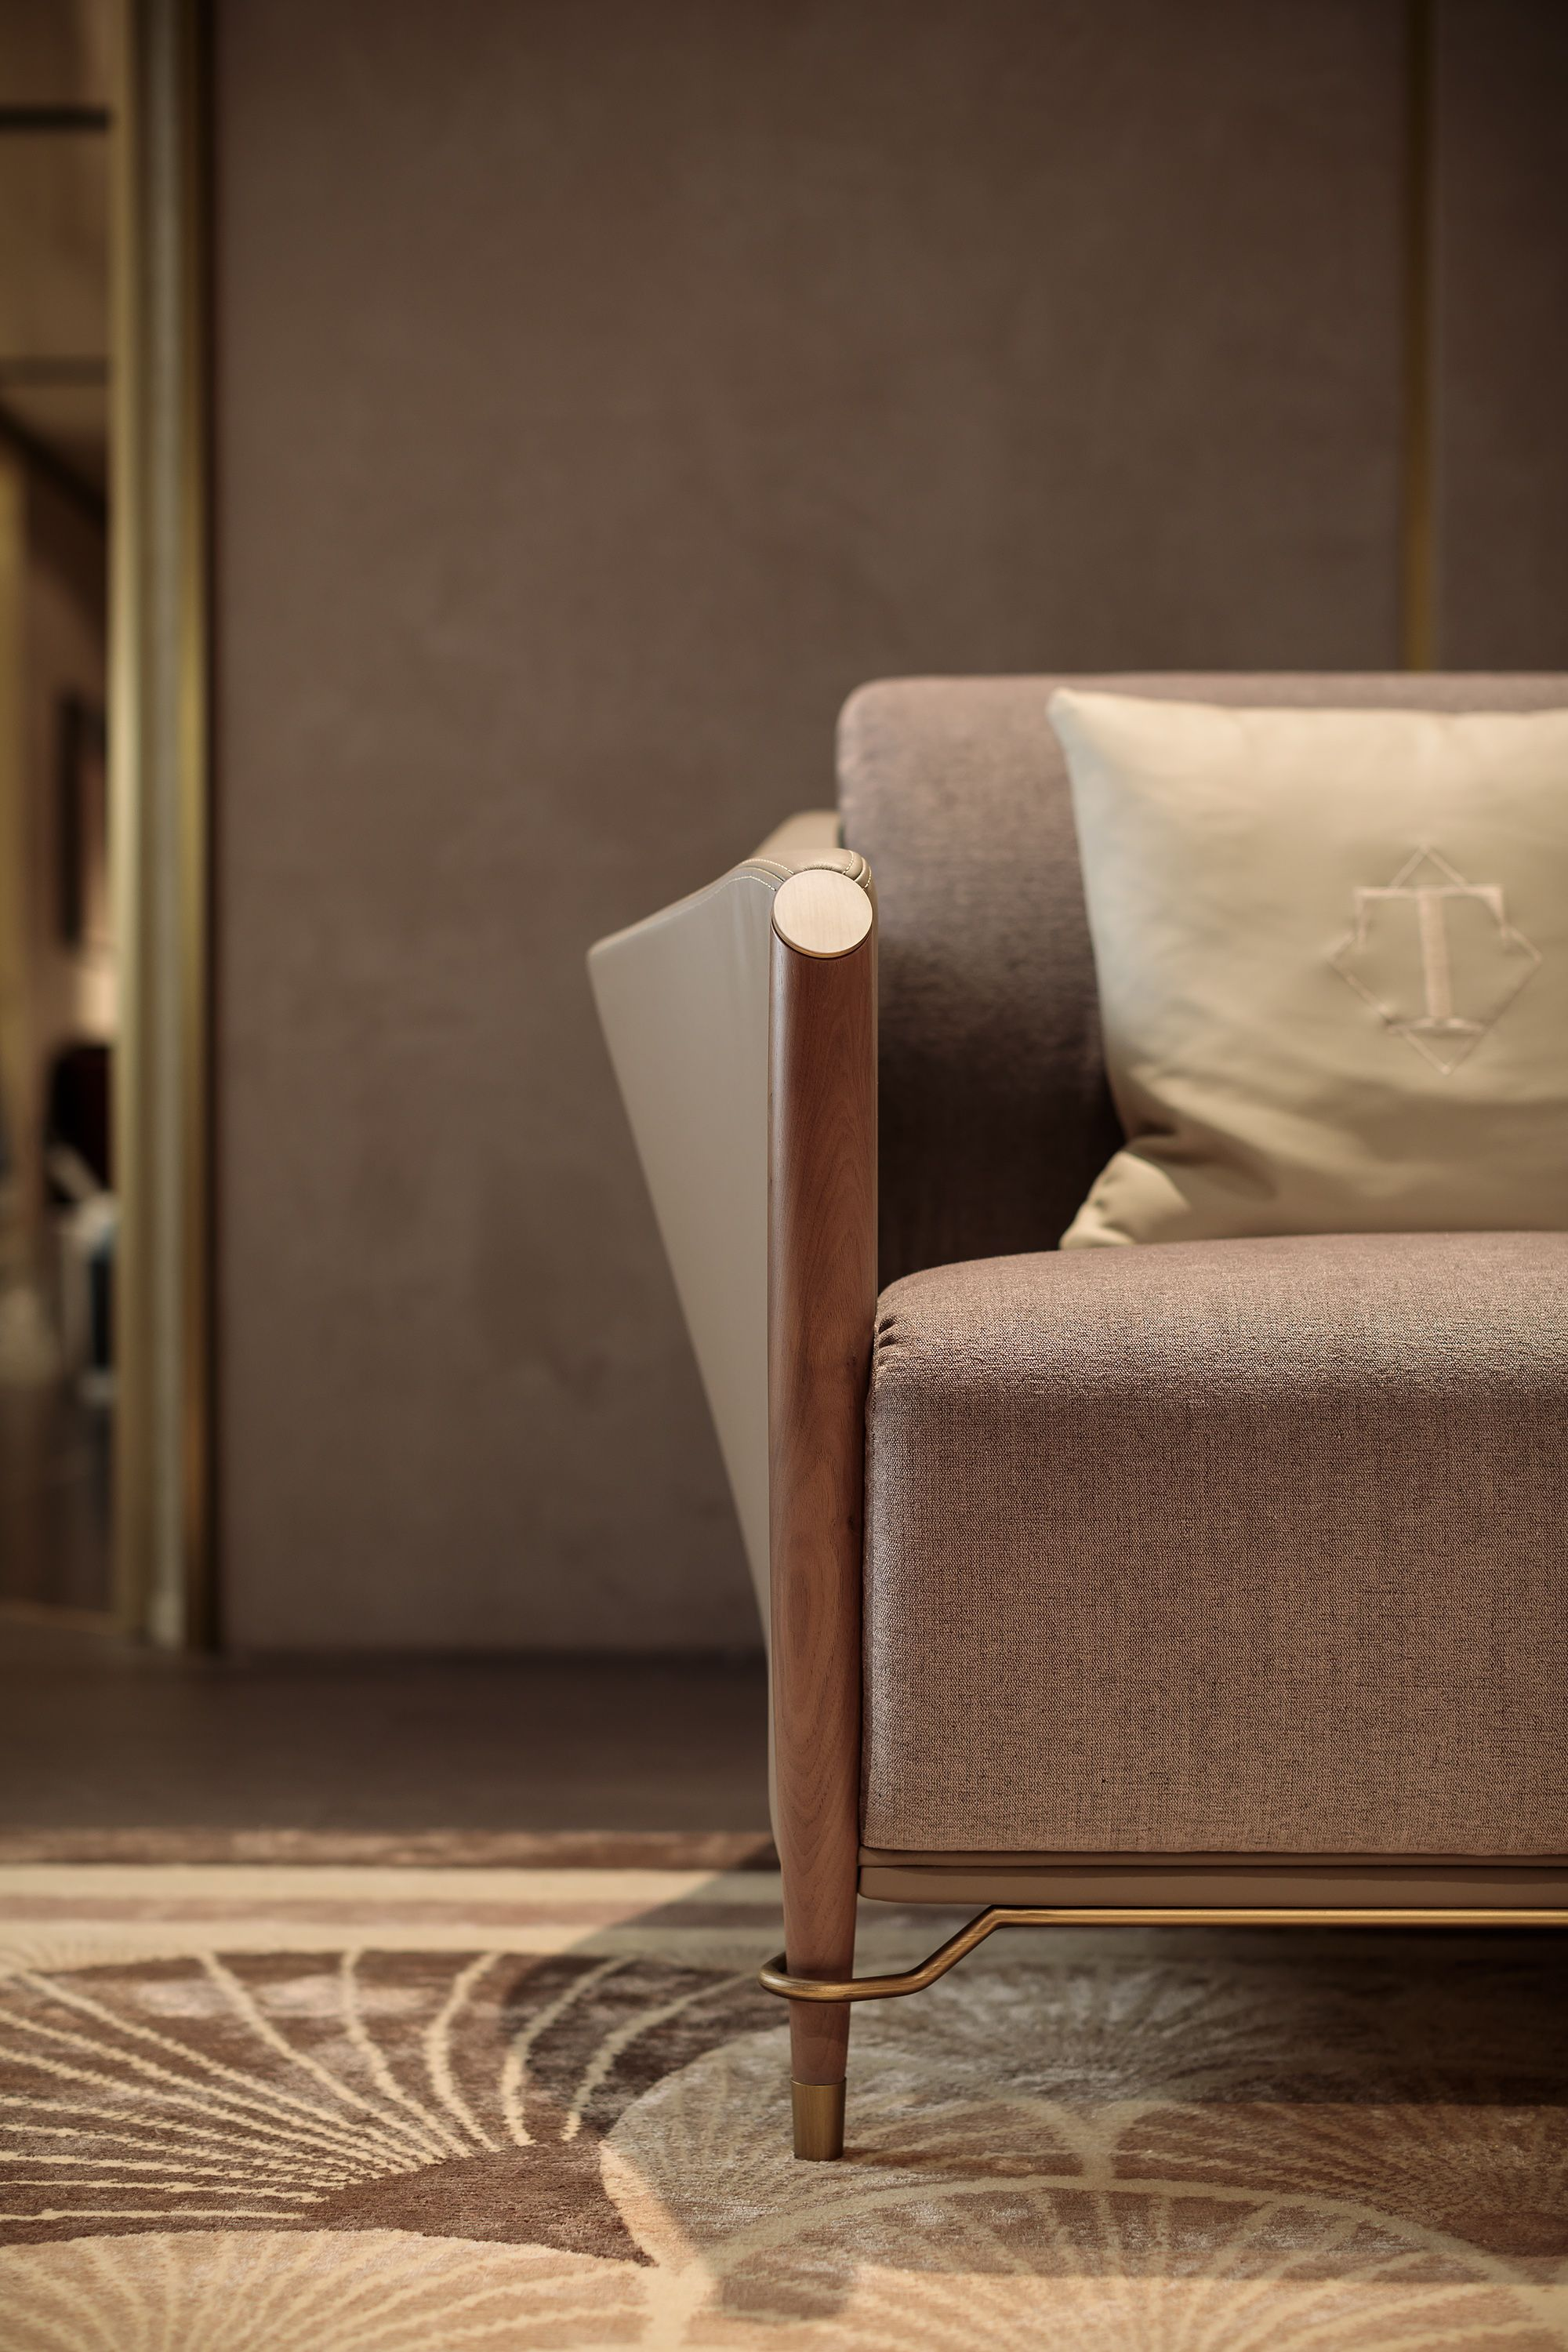 Italian Furniture For Exclusive And Modern Design Small Bedroom Decor Furniture Luxury Home Furniture